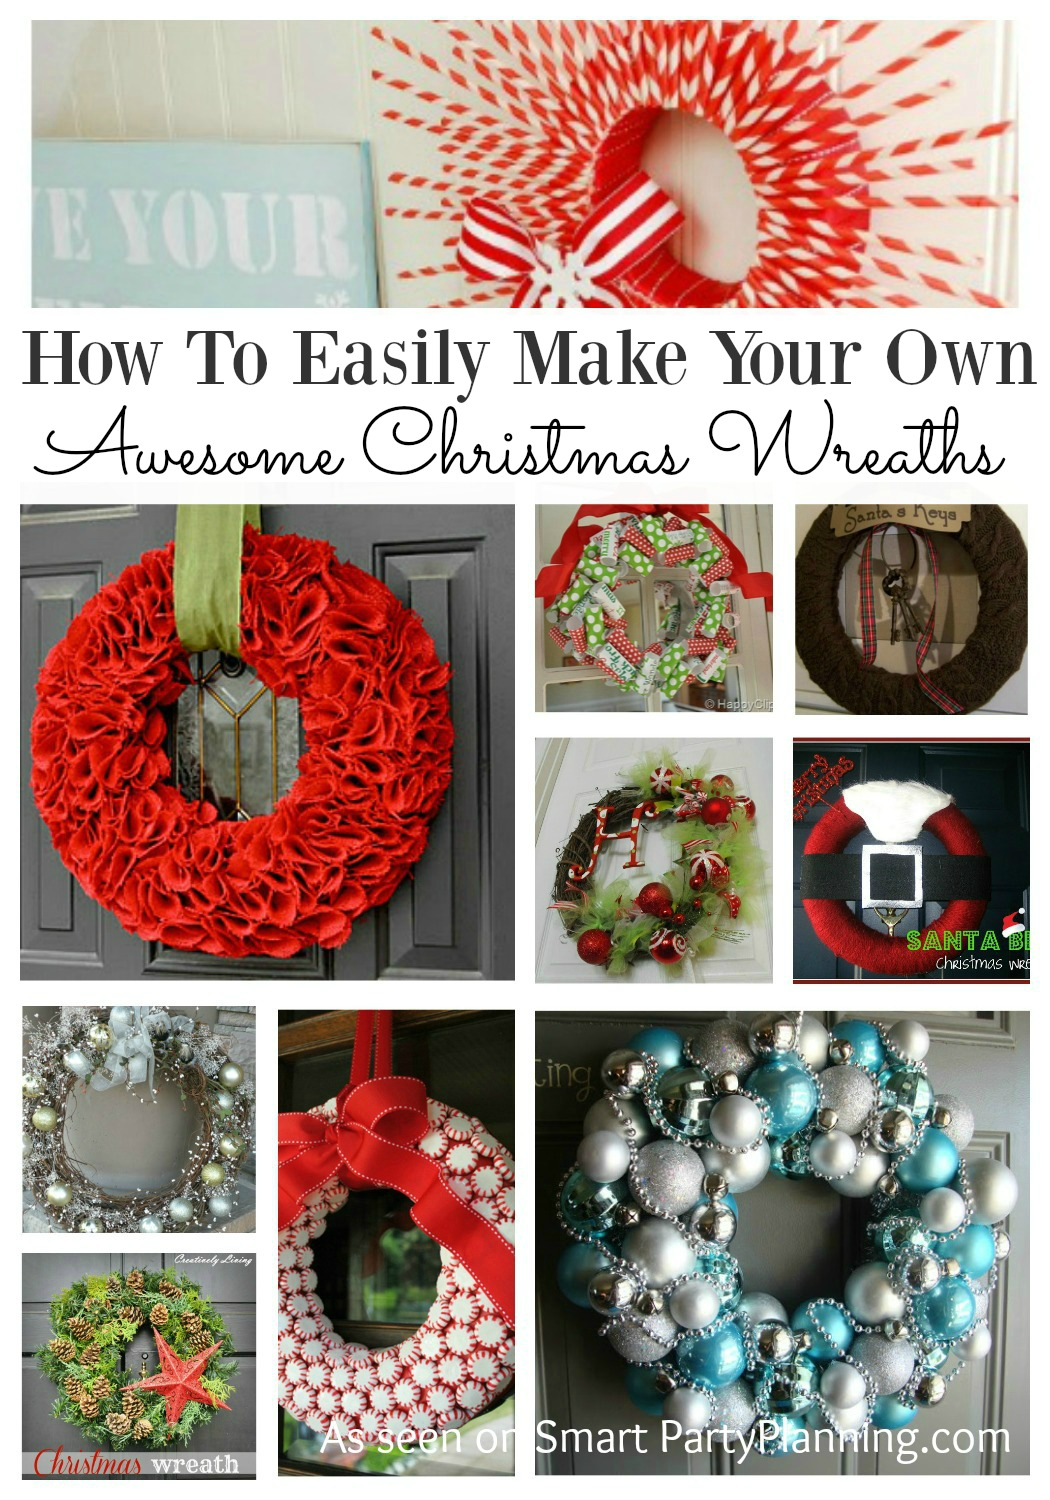 Have you ever wanted to make a Christmas wreath, but stuck on where to start? These 10 DIY wreaths are amazing and each one has an easy to follow tutorial. With designs to suit all including rustic, natural, modern and burlap, you will easily find one for your front door. If you are looking for an enjoyable Christmas craft this is it!